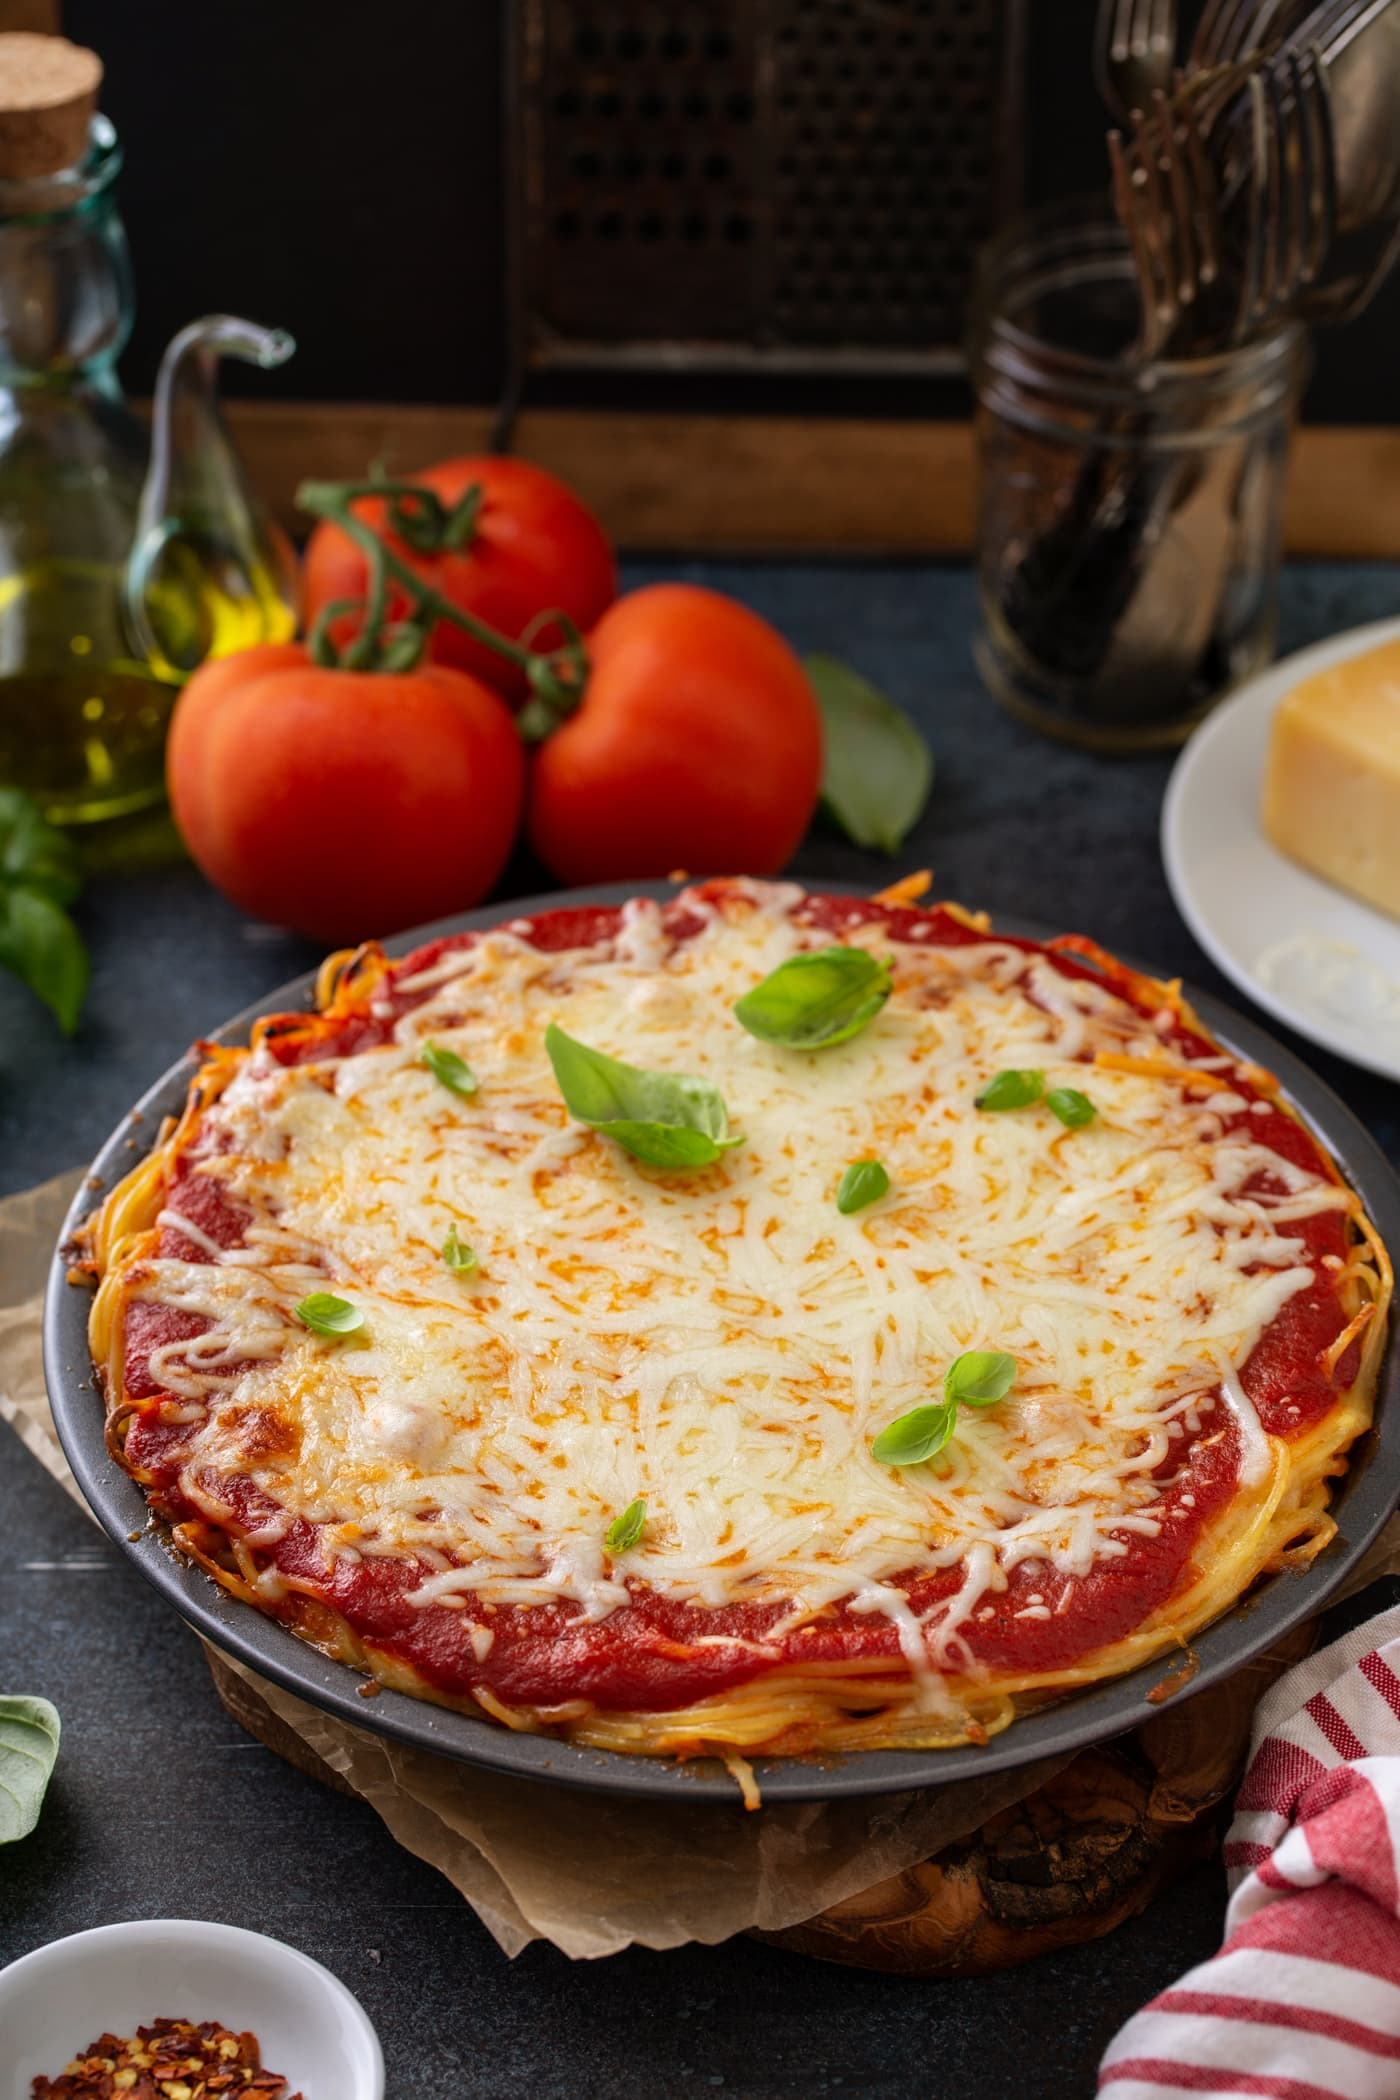 A pie dish filled with baked spaghetti pie. There are layers of spaghetti, spaghetti sauce and melted cheeses. and a few basil leaves on top. Three tomatoes, olive oil and bay leaves are in the background.